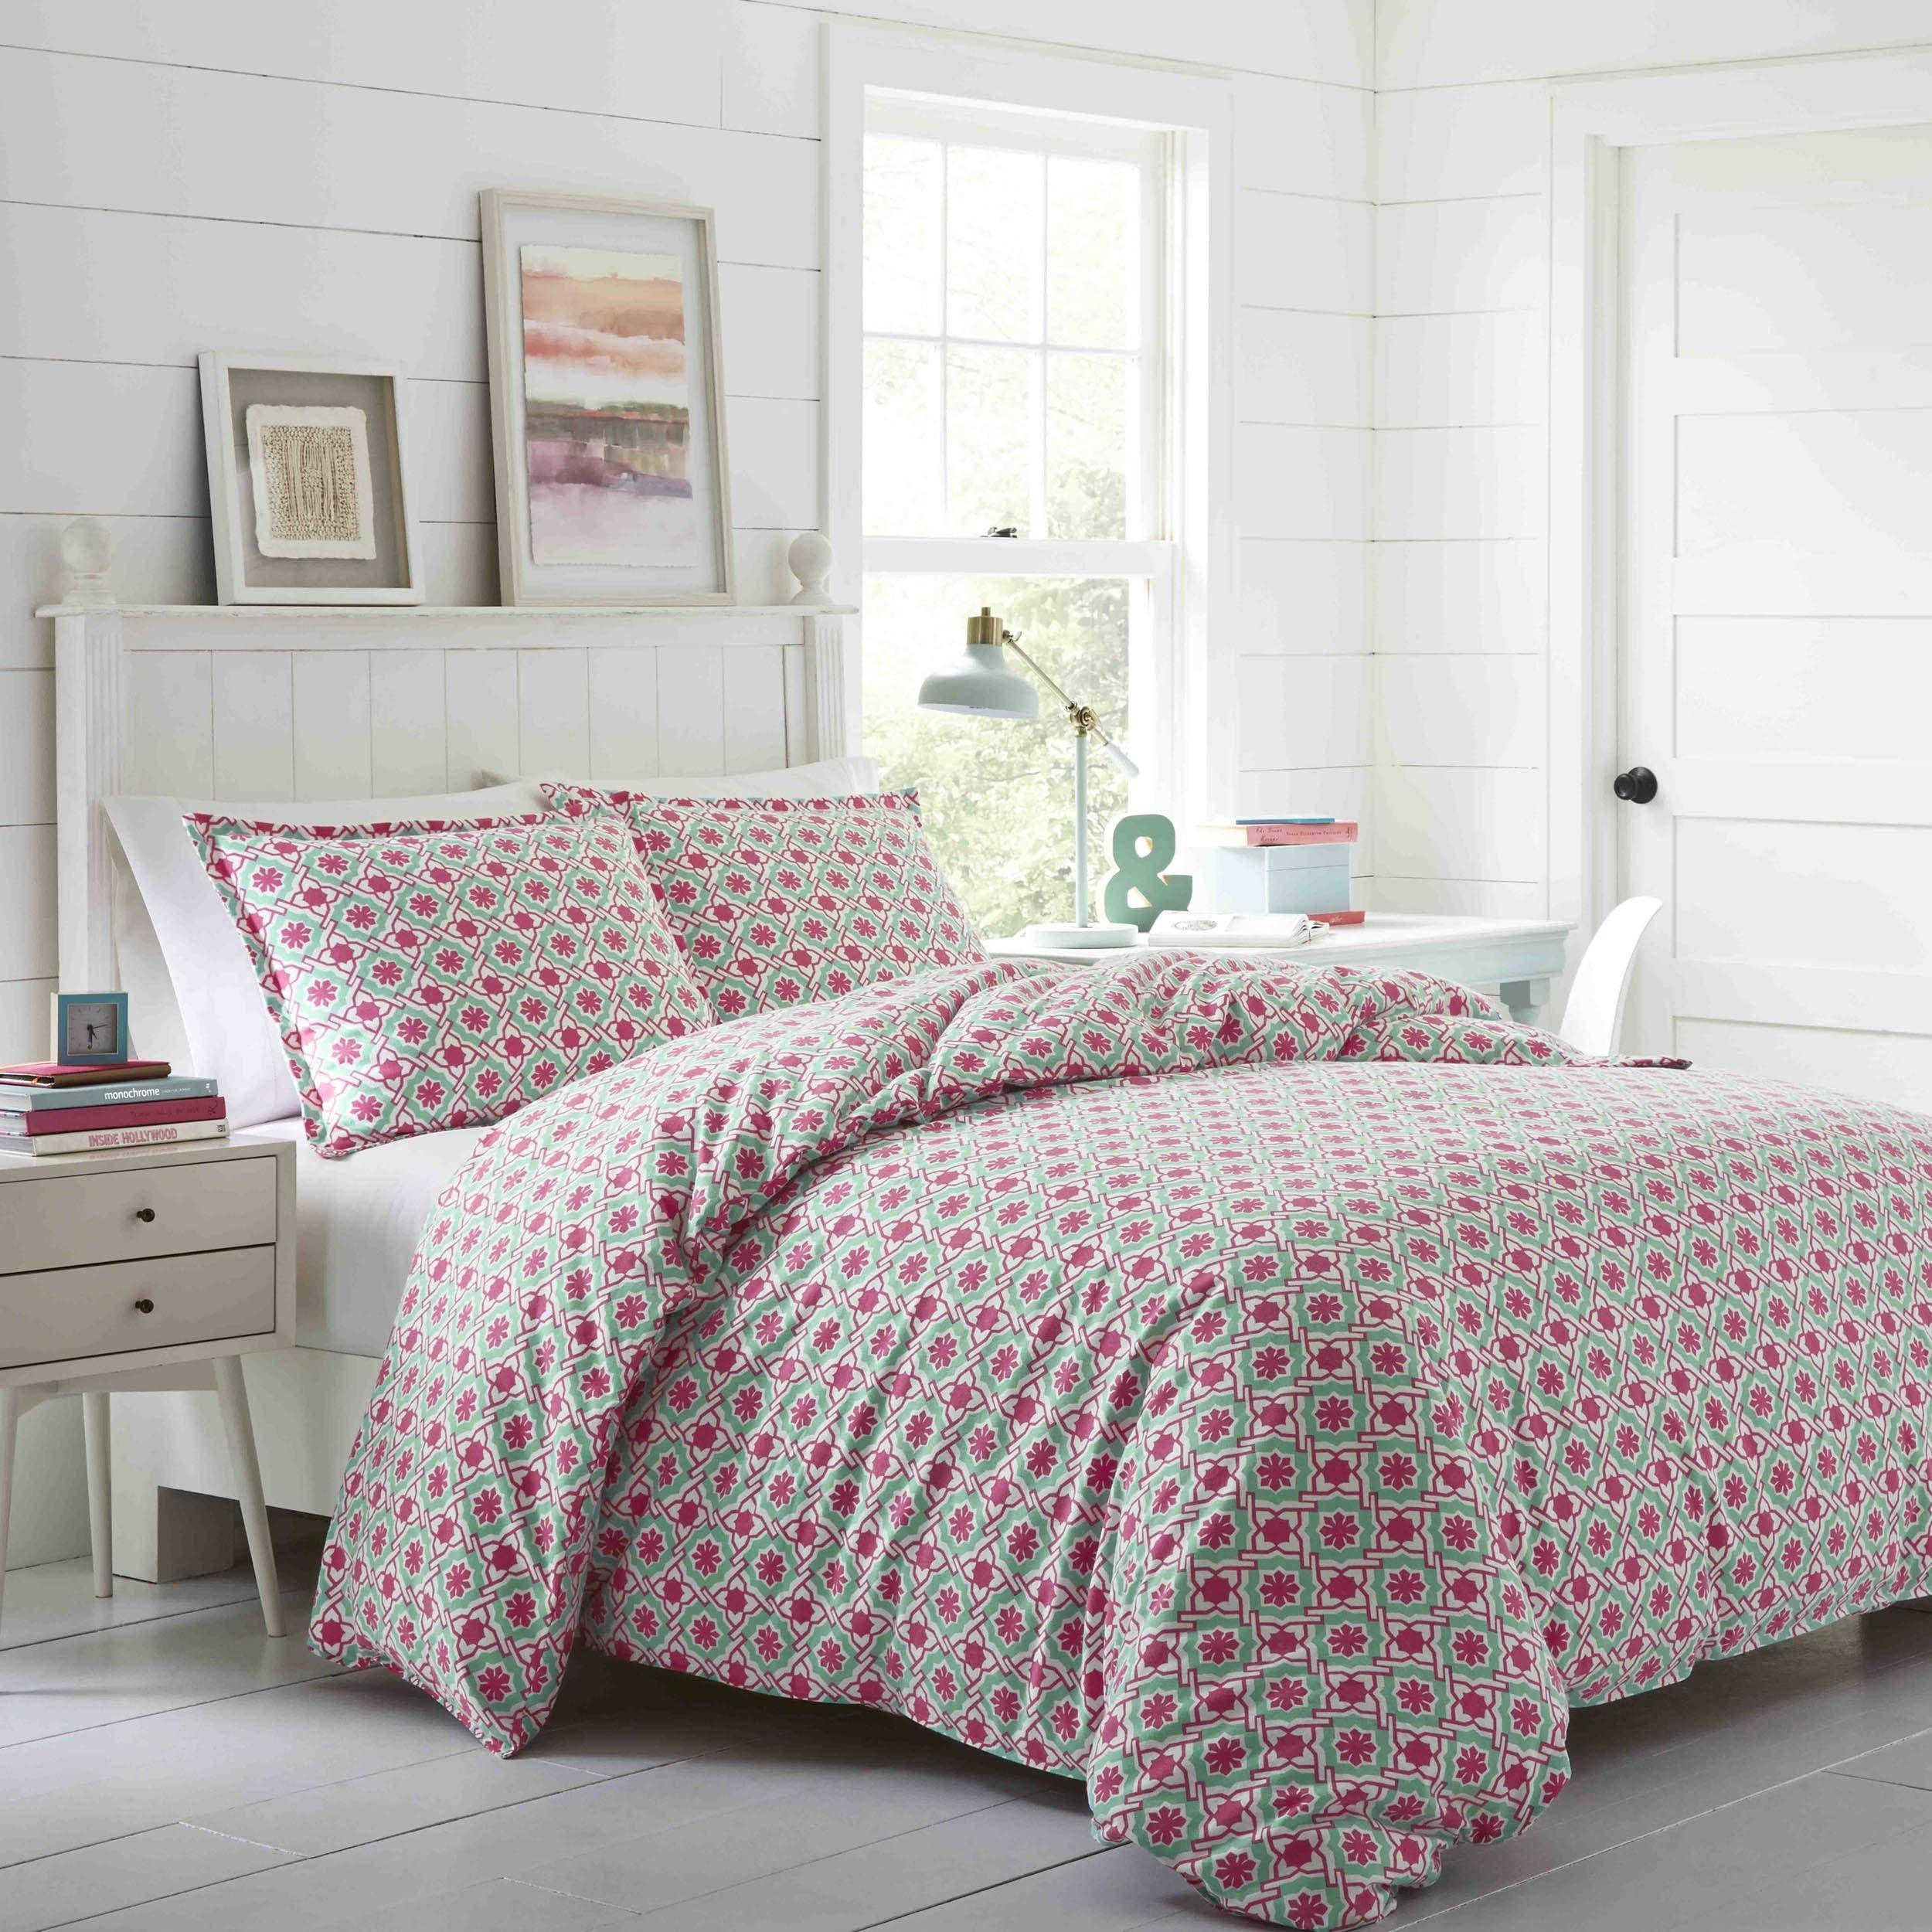 ideas for covers room cute duvet bedspreads pin pinterest teens and bedspread bedrooms